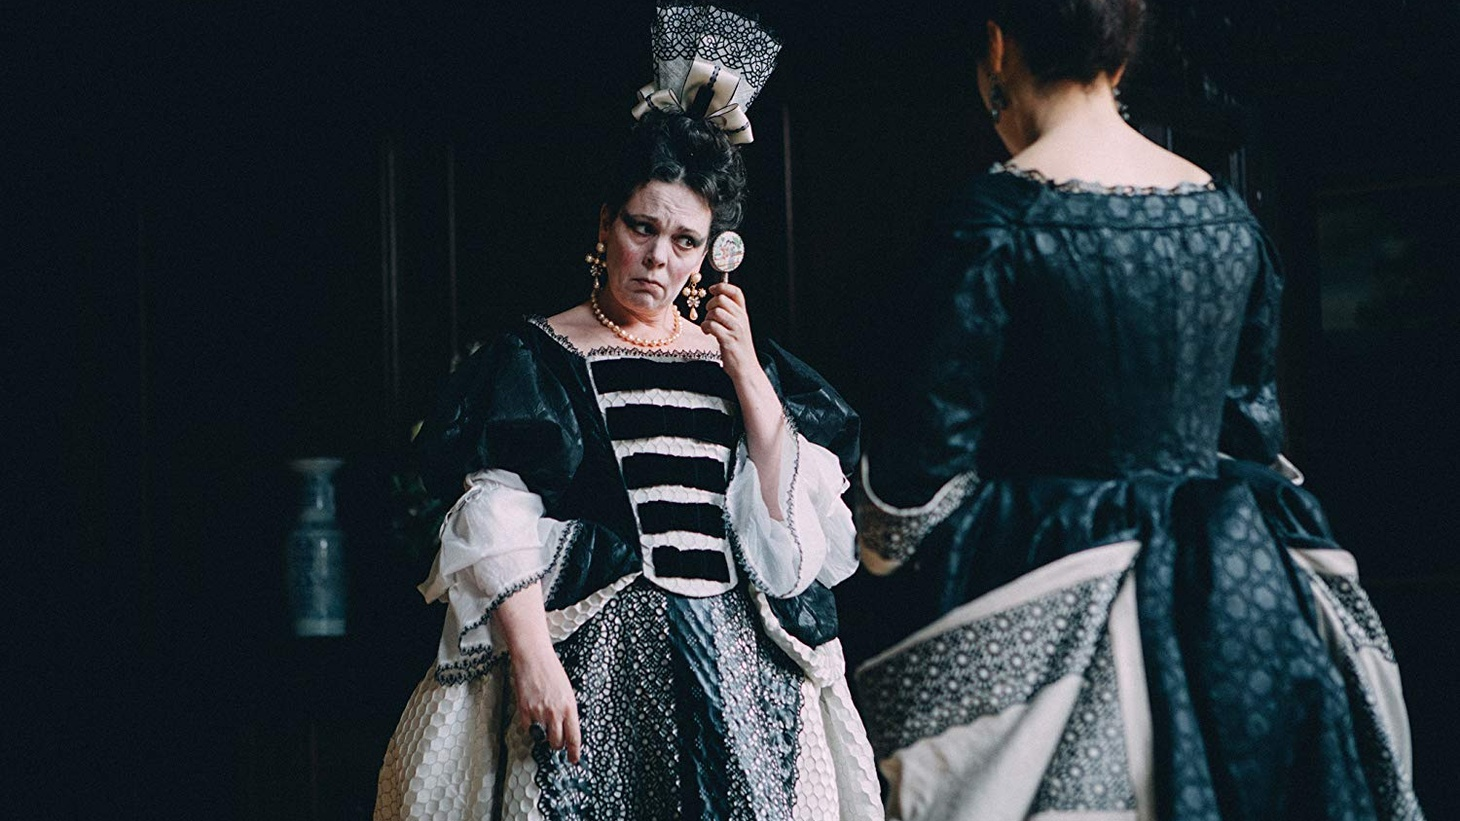 Rachel Weisz and Olivia Colman in The Favourite (2018).